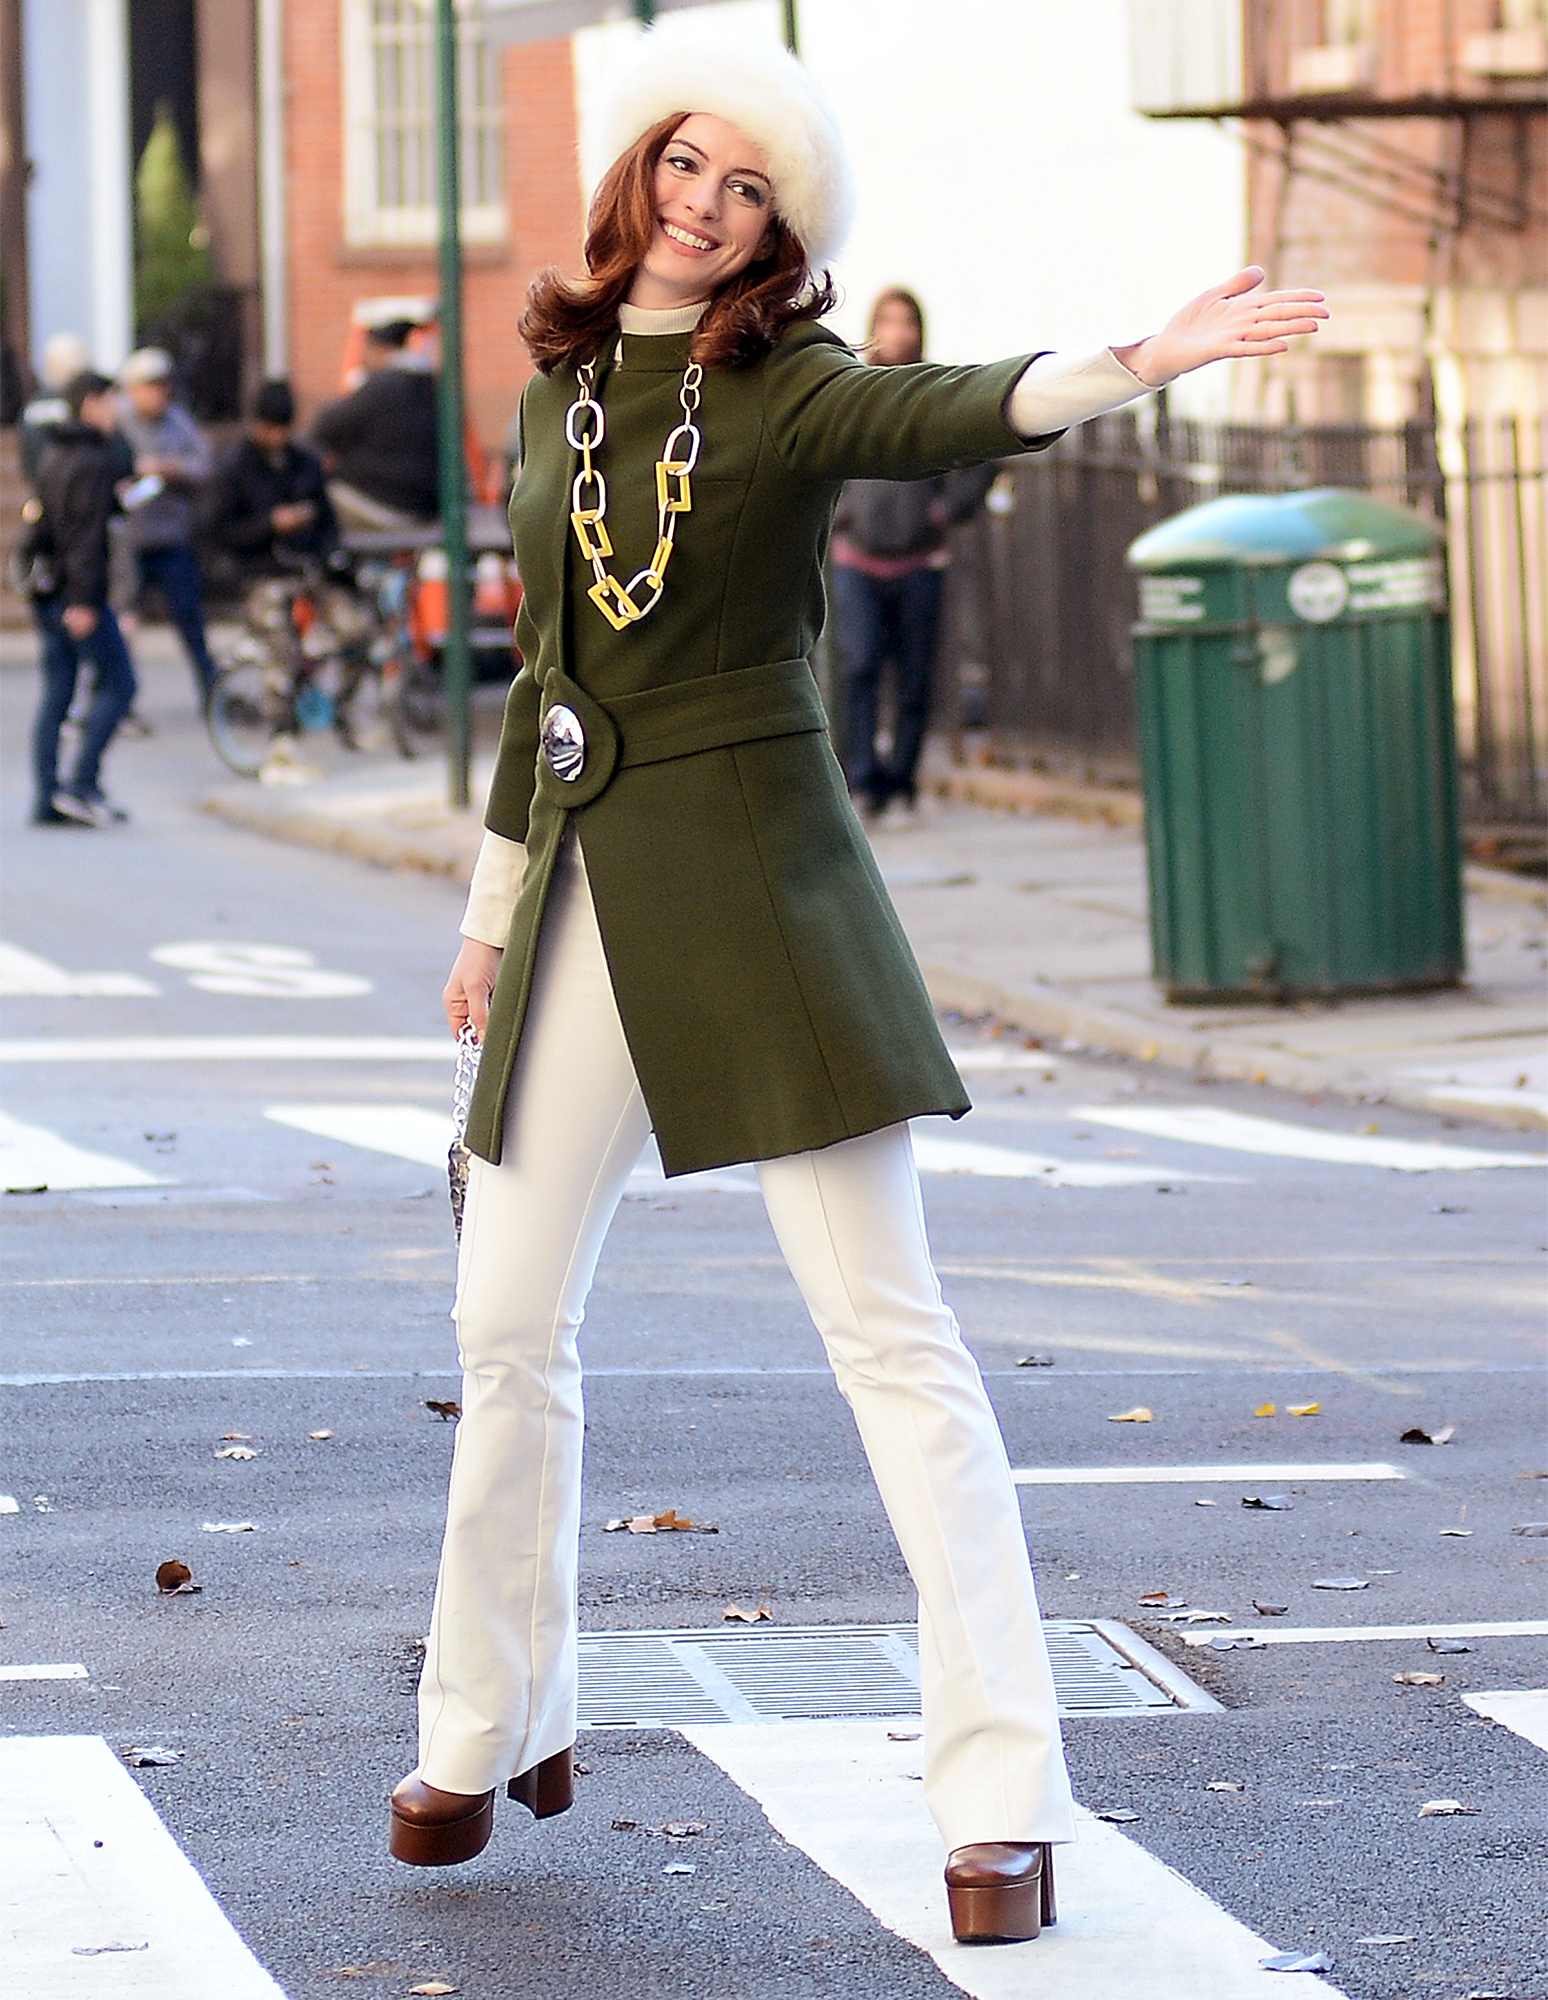 Anne Hathaway got her Jackie-O look-a-like moment trowing kisses and smiling while filming Modern Love series in new york City